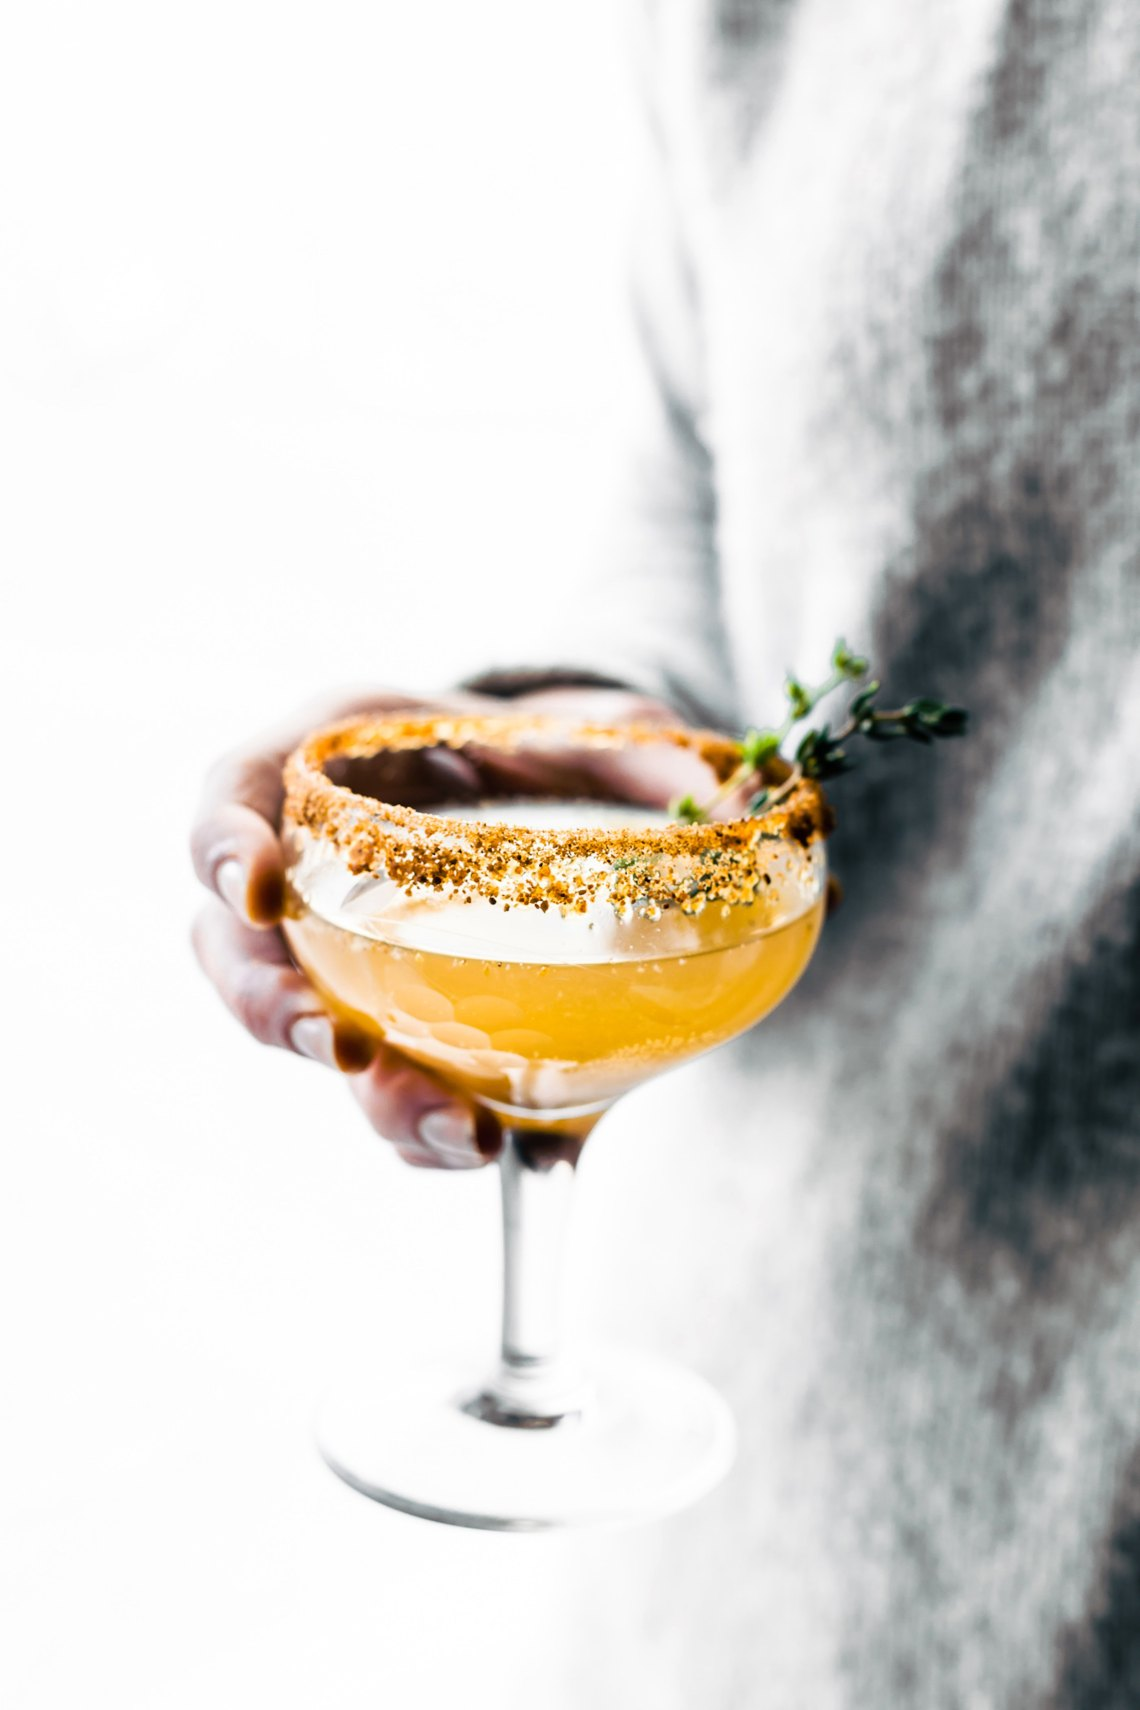 Alcohol free drinks are on trend and here's why I'm glad | Lifestyle